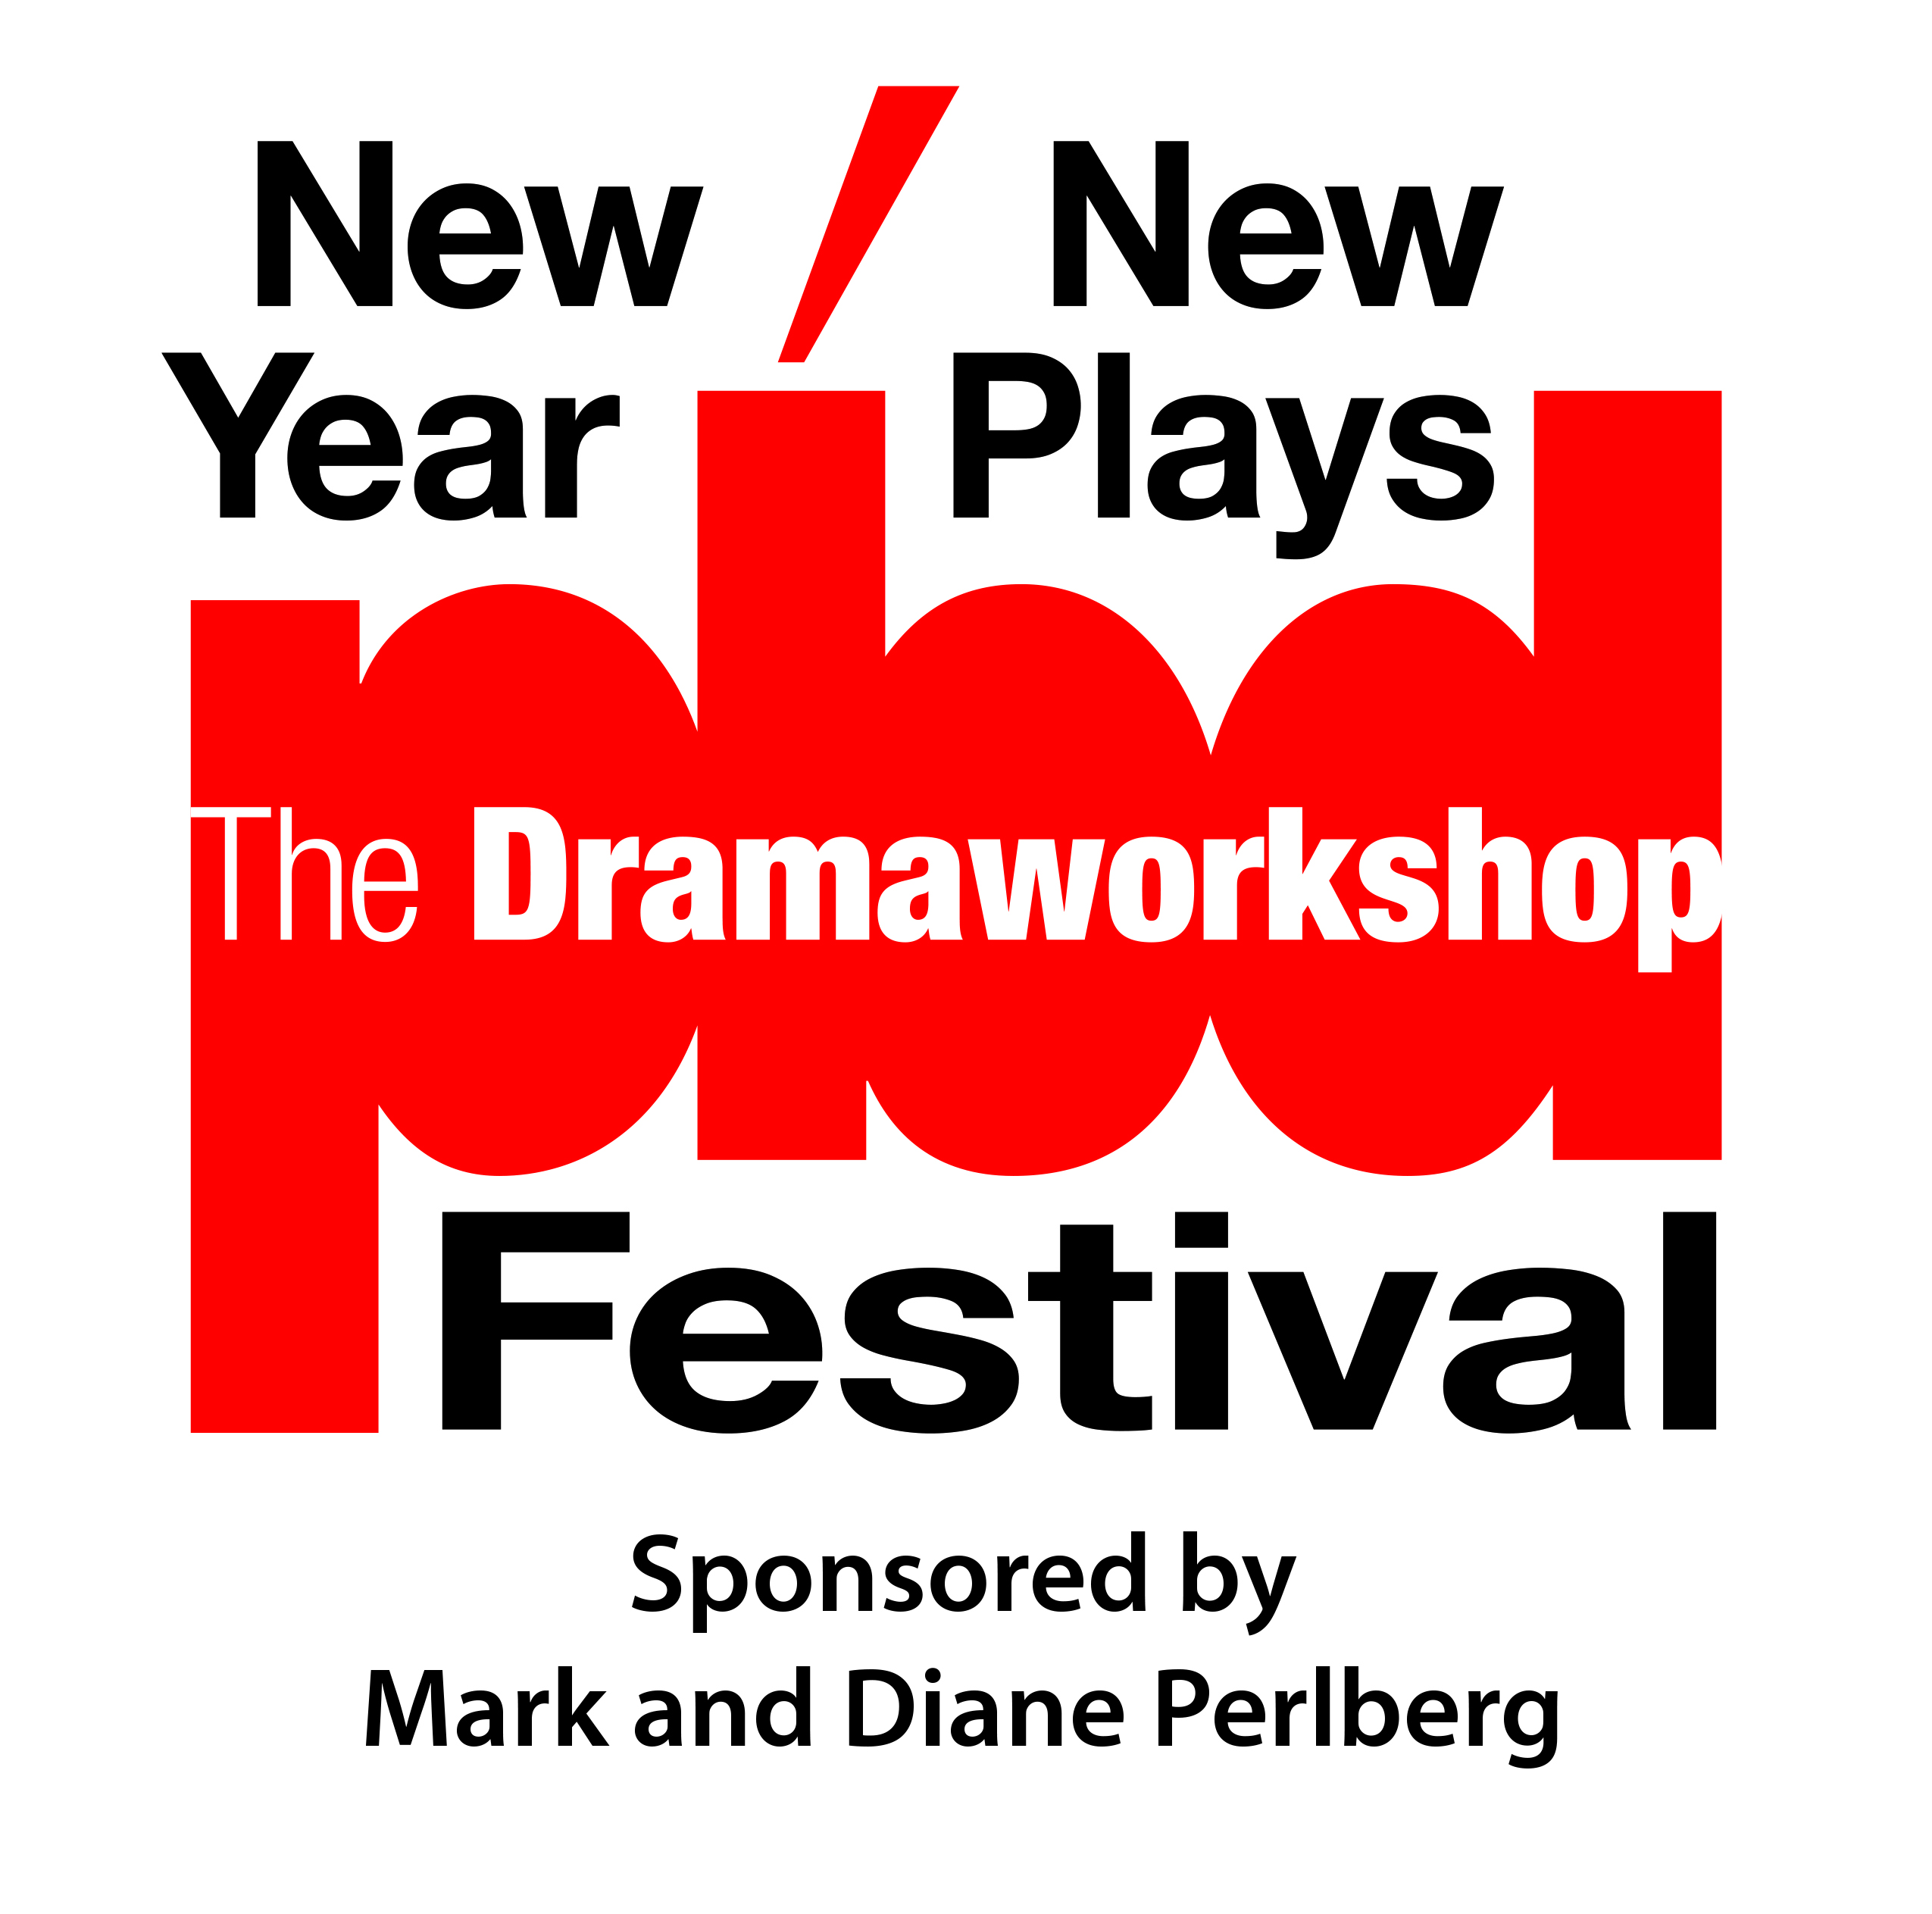 New Play Festival: The Prey by Gina Montet